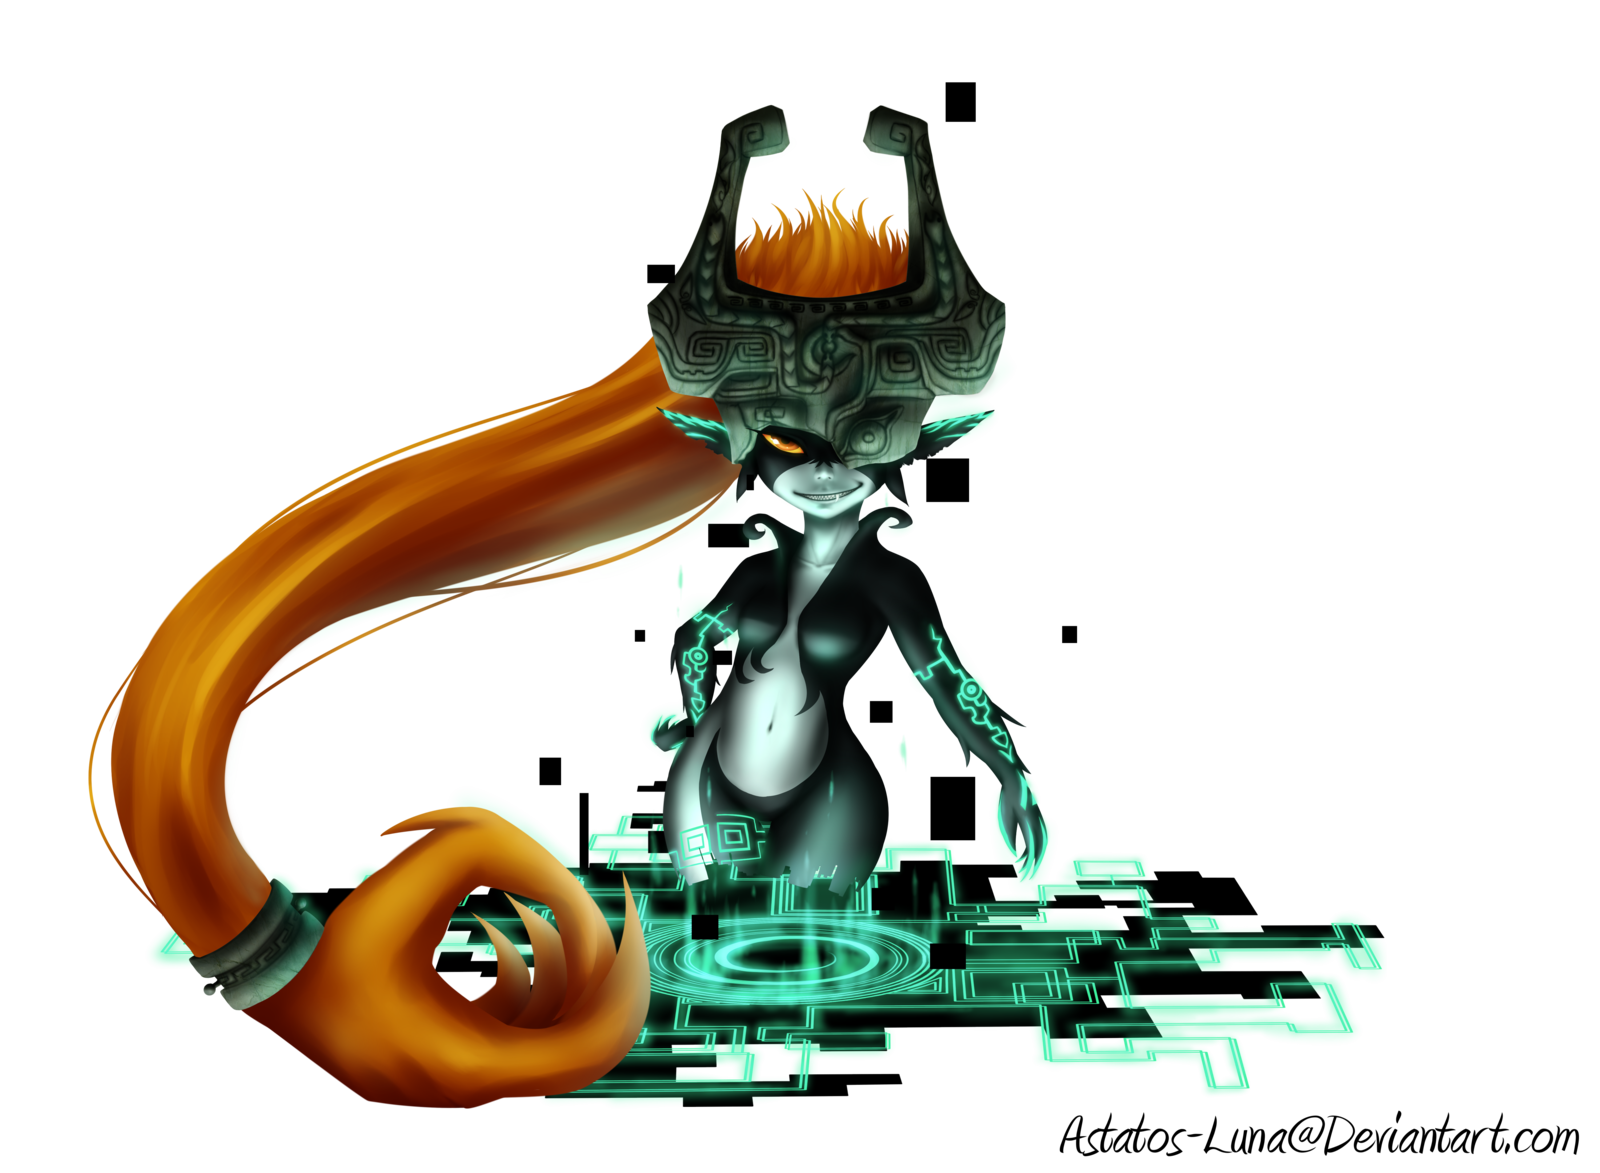 Transparent zelda background. Midna painting by astatos